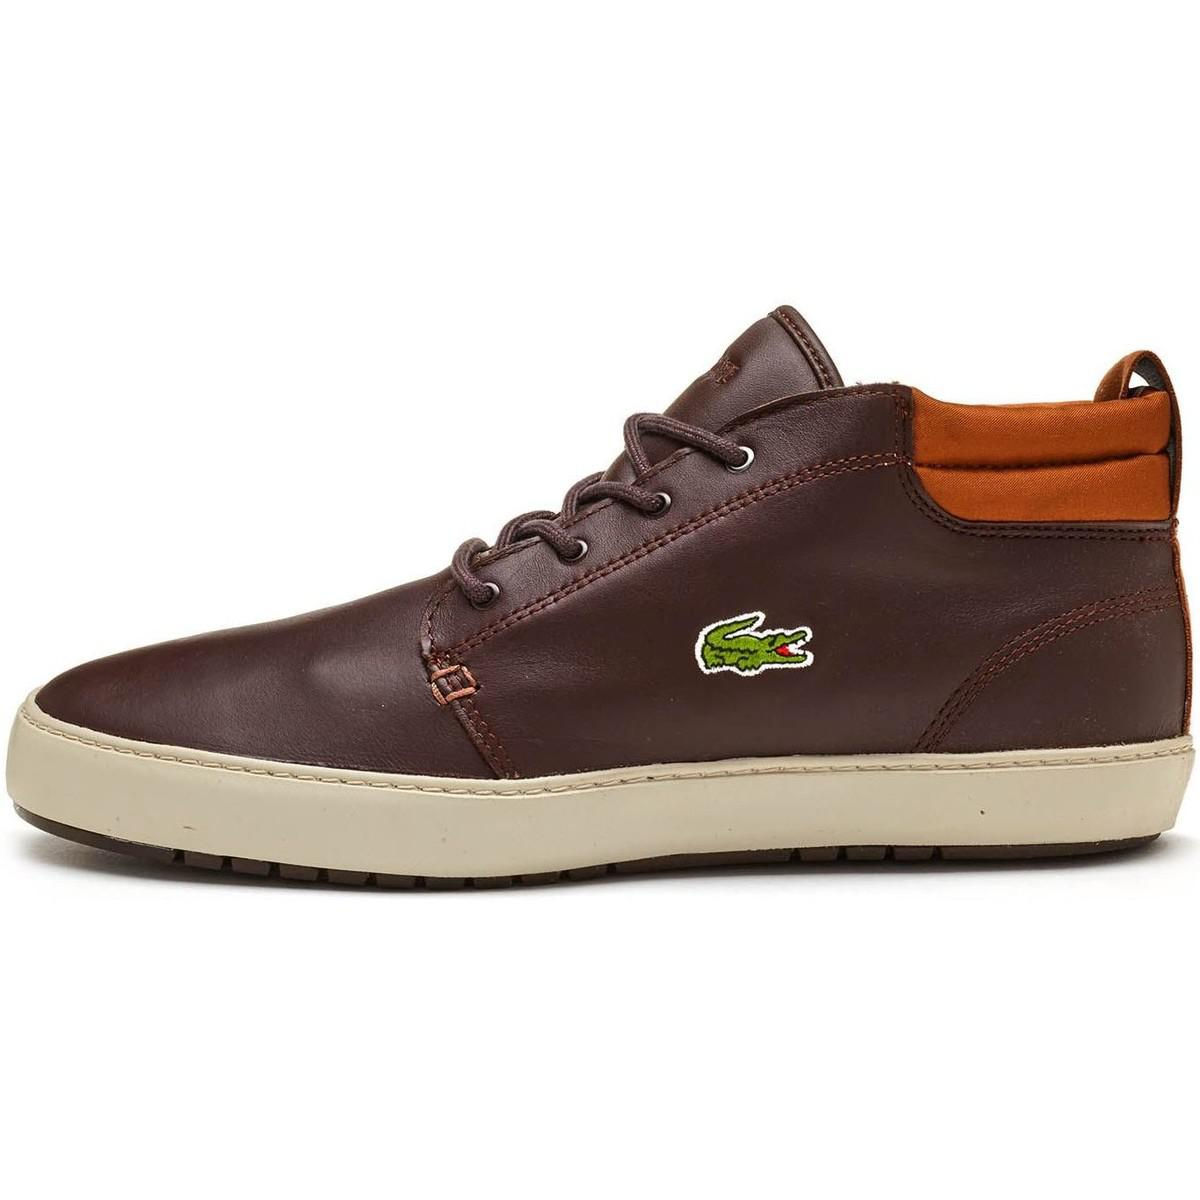 Lacoste. Ampthill Terra 317 1 Cam High Leather Trainers In Dark Brown 73 Men\u0027s  Shoes ...